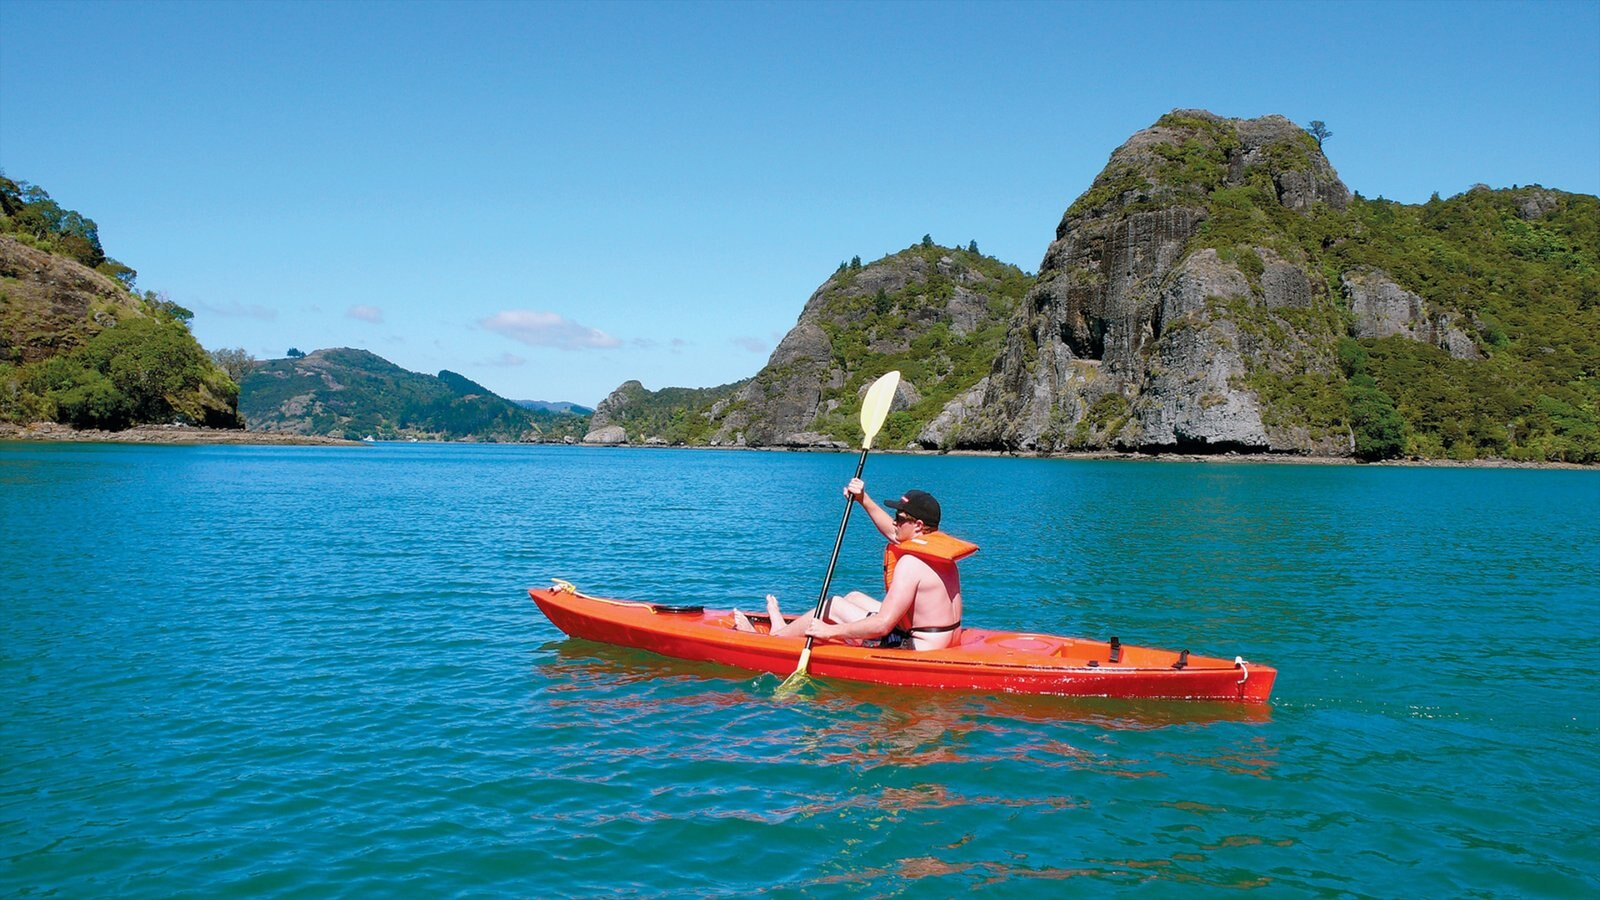 Northland showing island views and kayaking or canoeing as well as an individual male